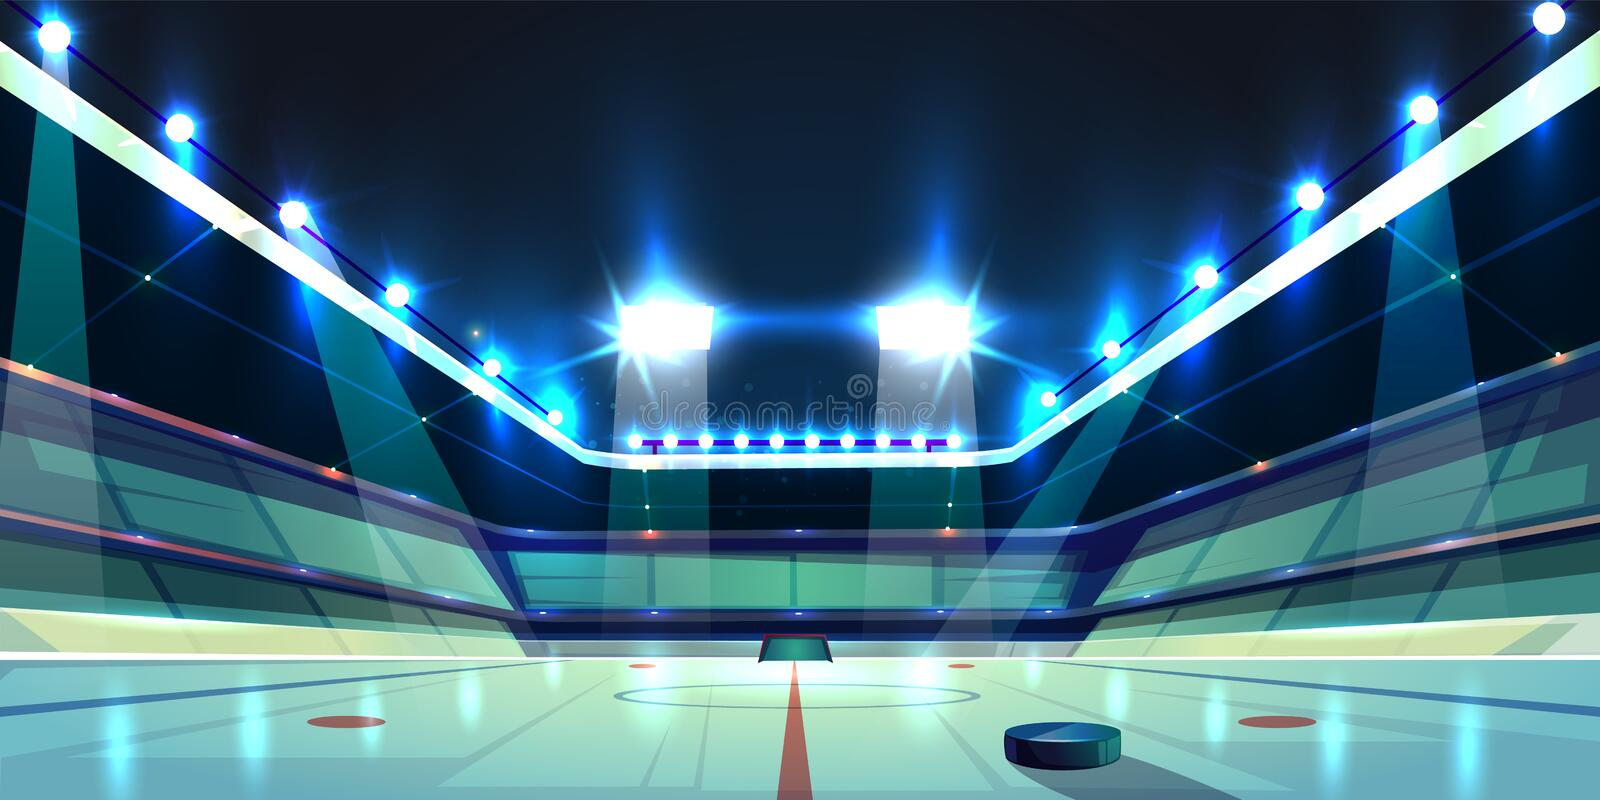 Vektorhockeyarena, isisbana med pucken stock illustrationer